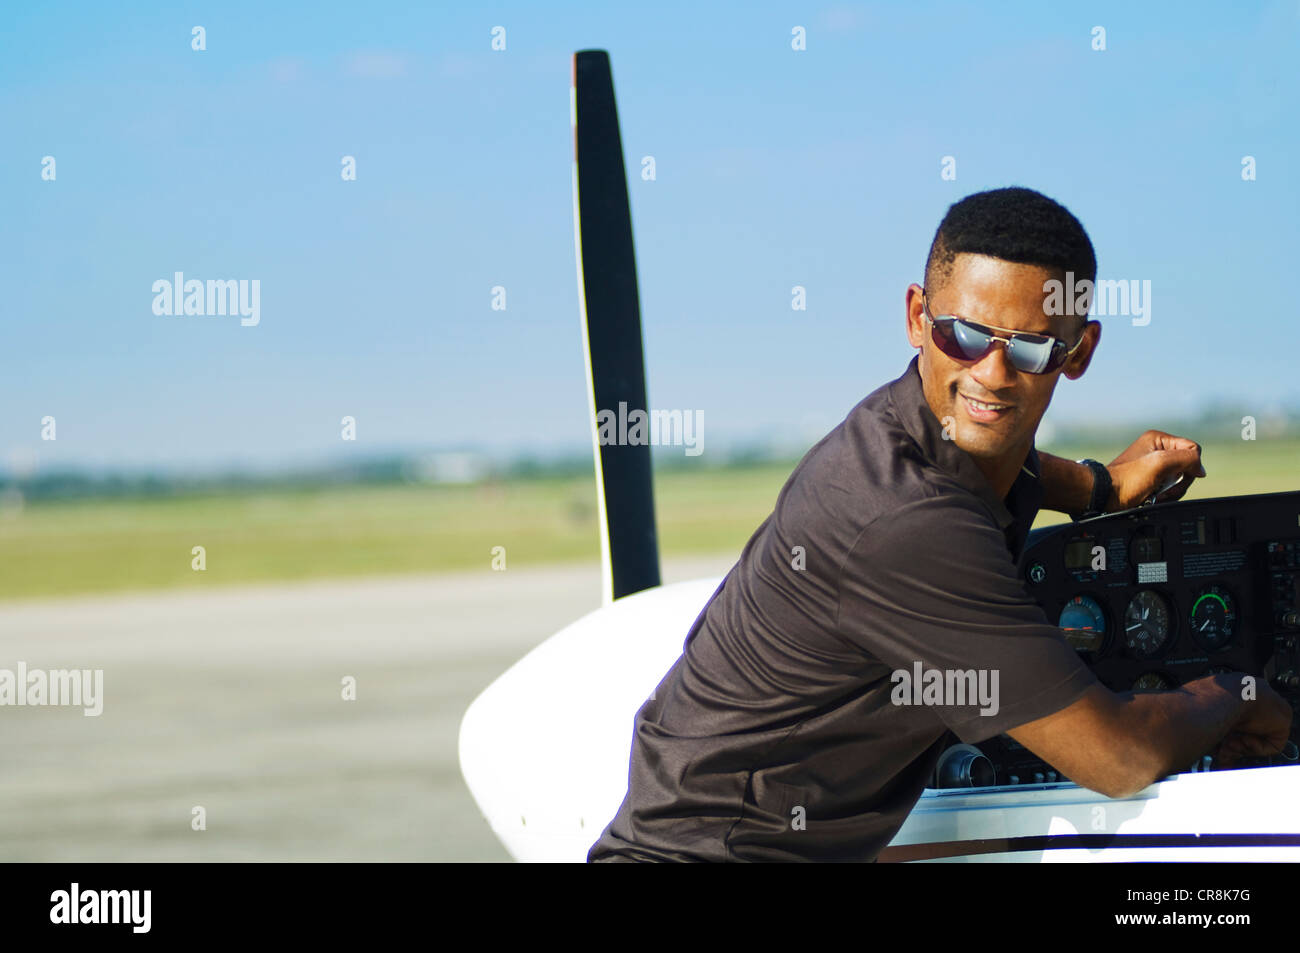 A pilot checking his plane pre-launch pauses to look over his shoulder with clenched teeth. - Stock Image